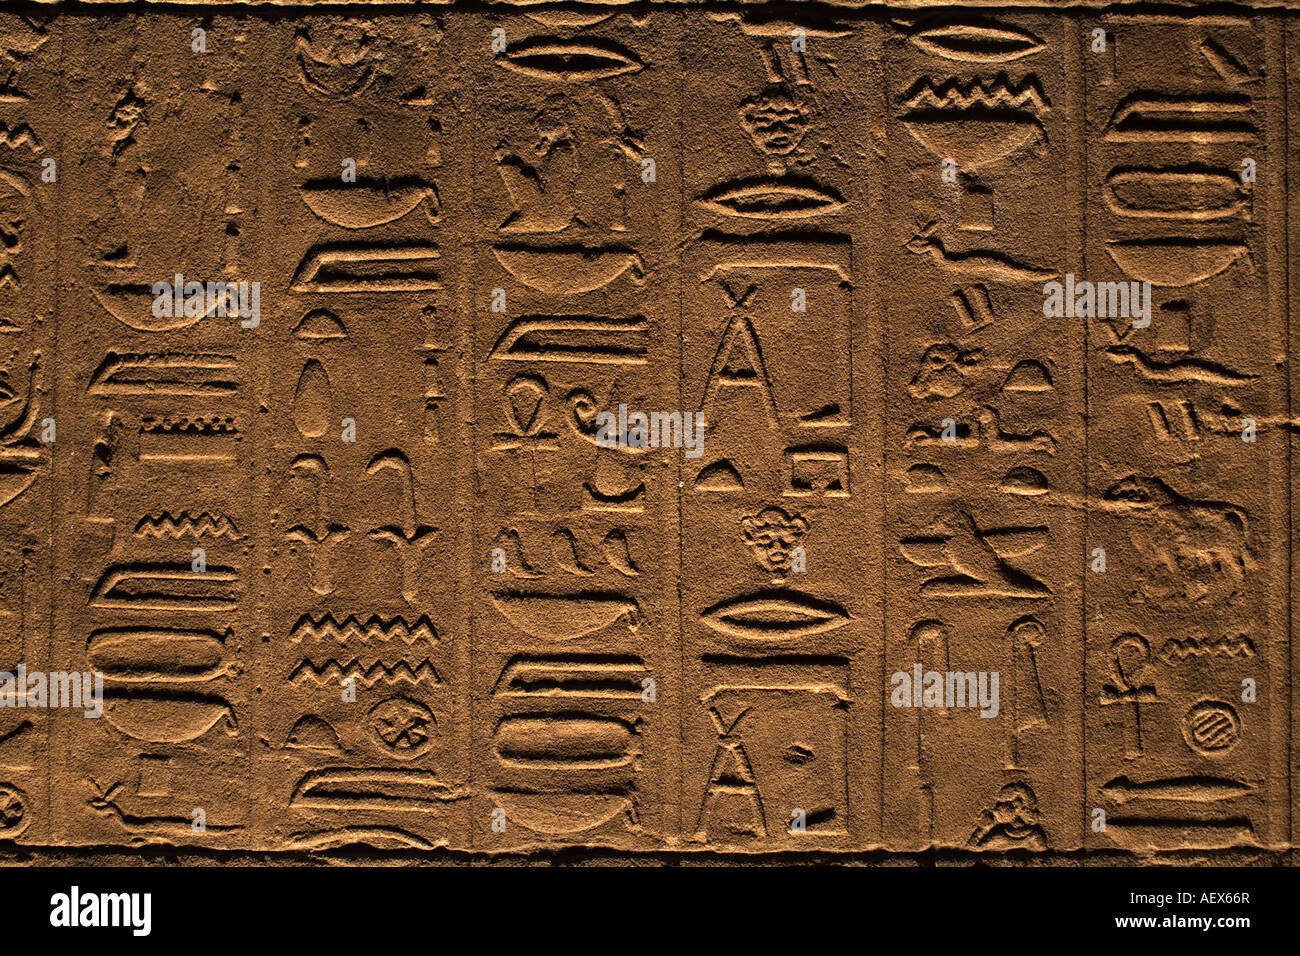 hieroglyphs in Philae Temple, Egypt - Stock Image